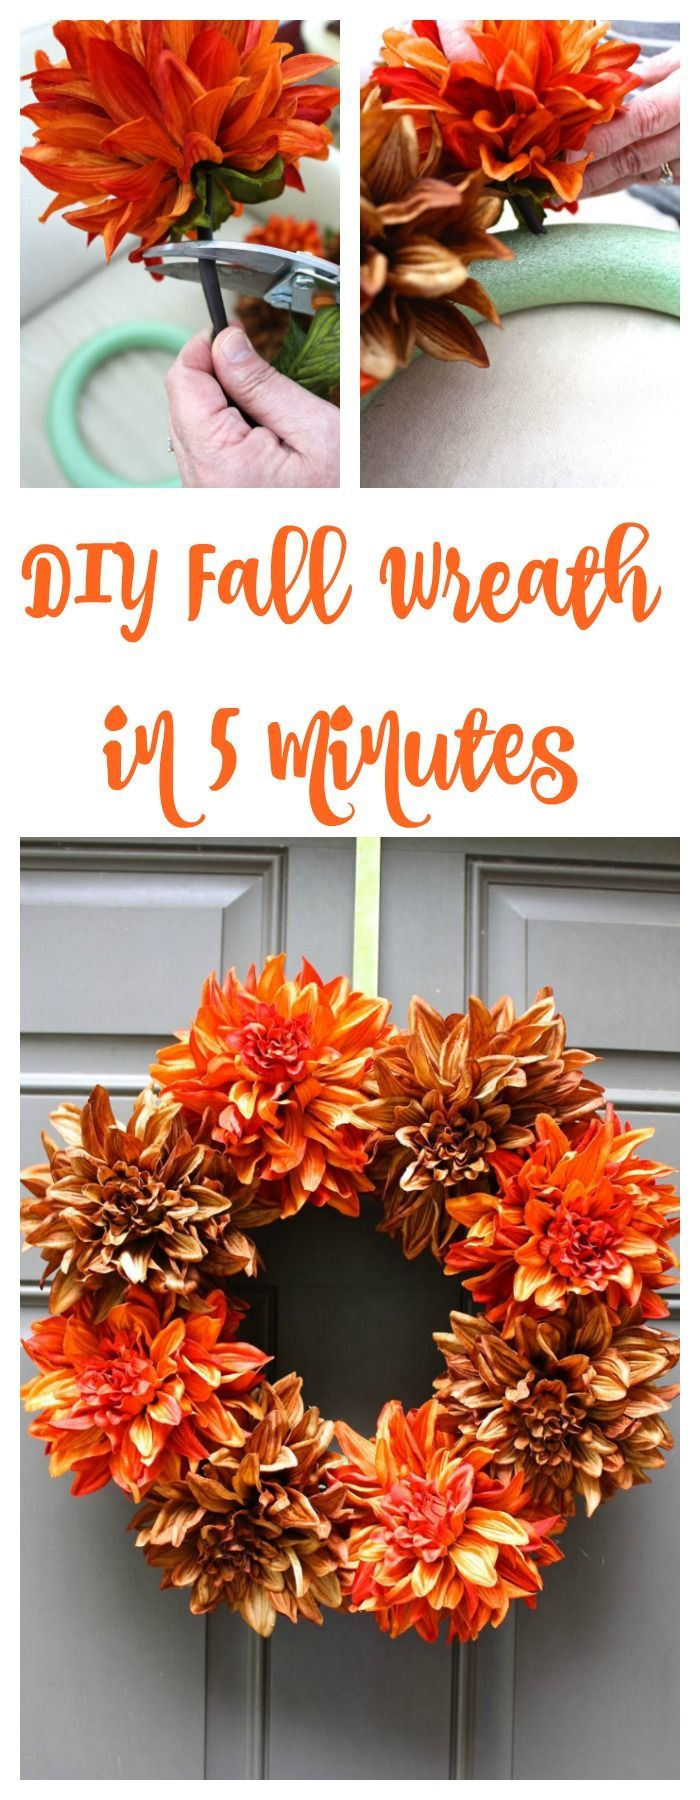 Best 25 easy fall crafts ideas on pinterest autumn for Easy diy fall crafts